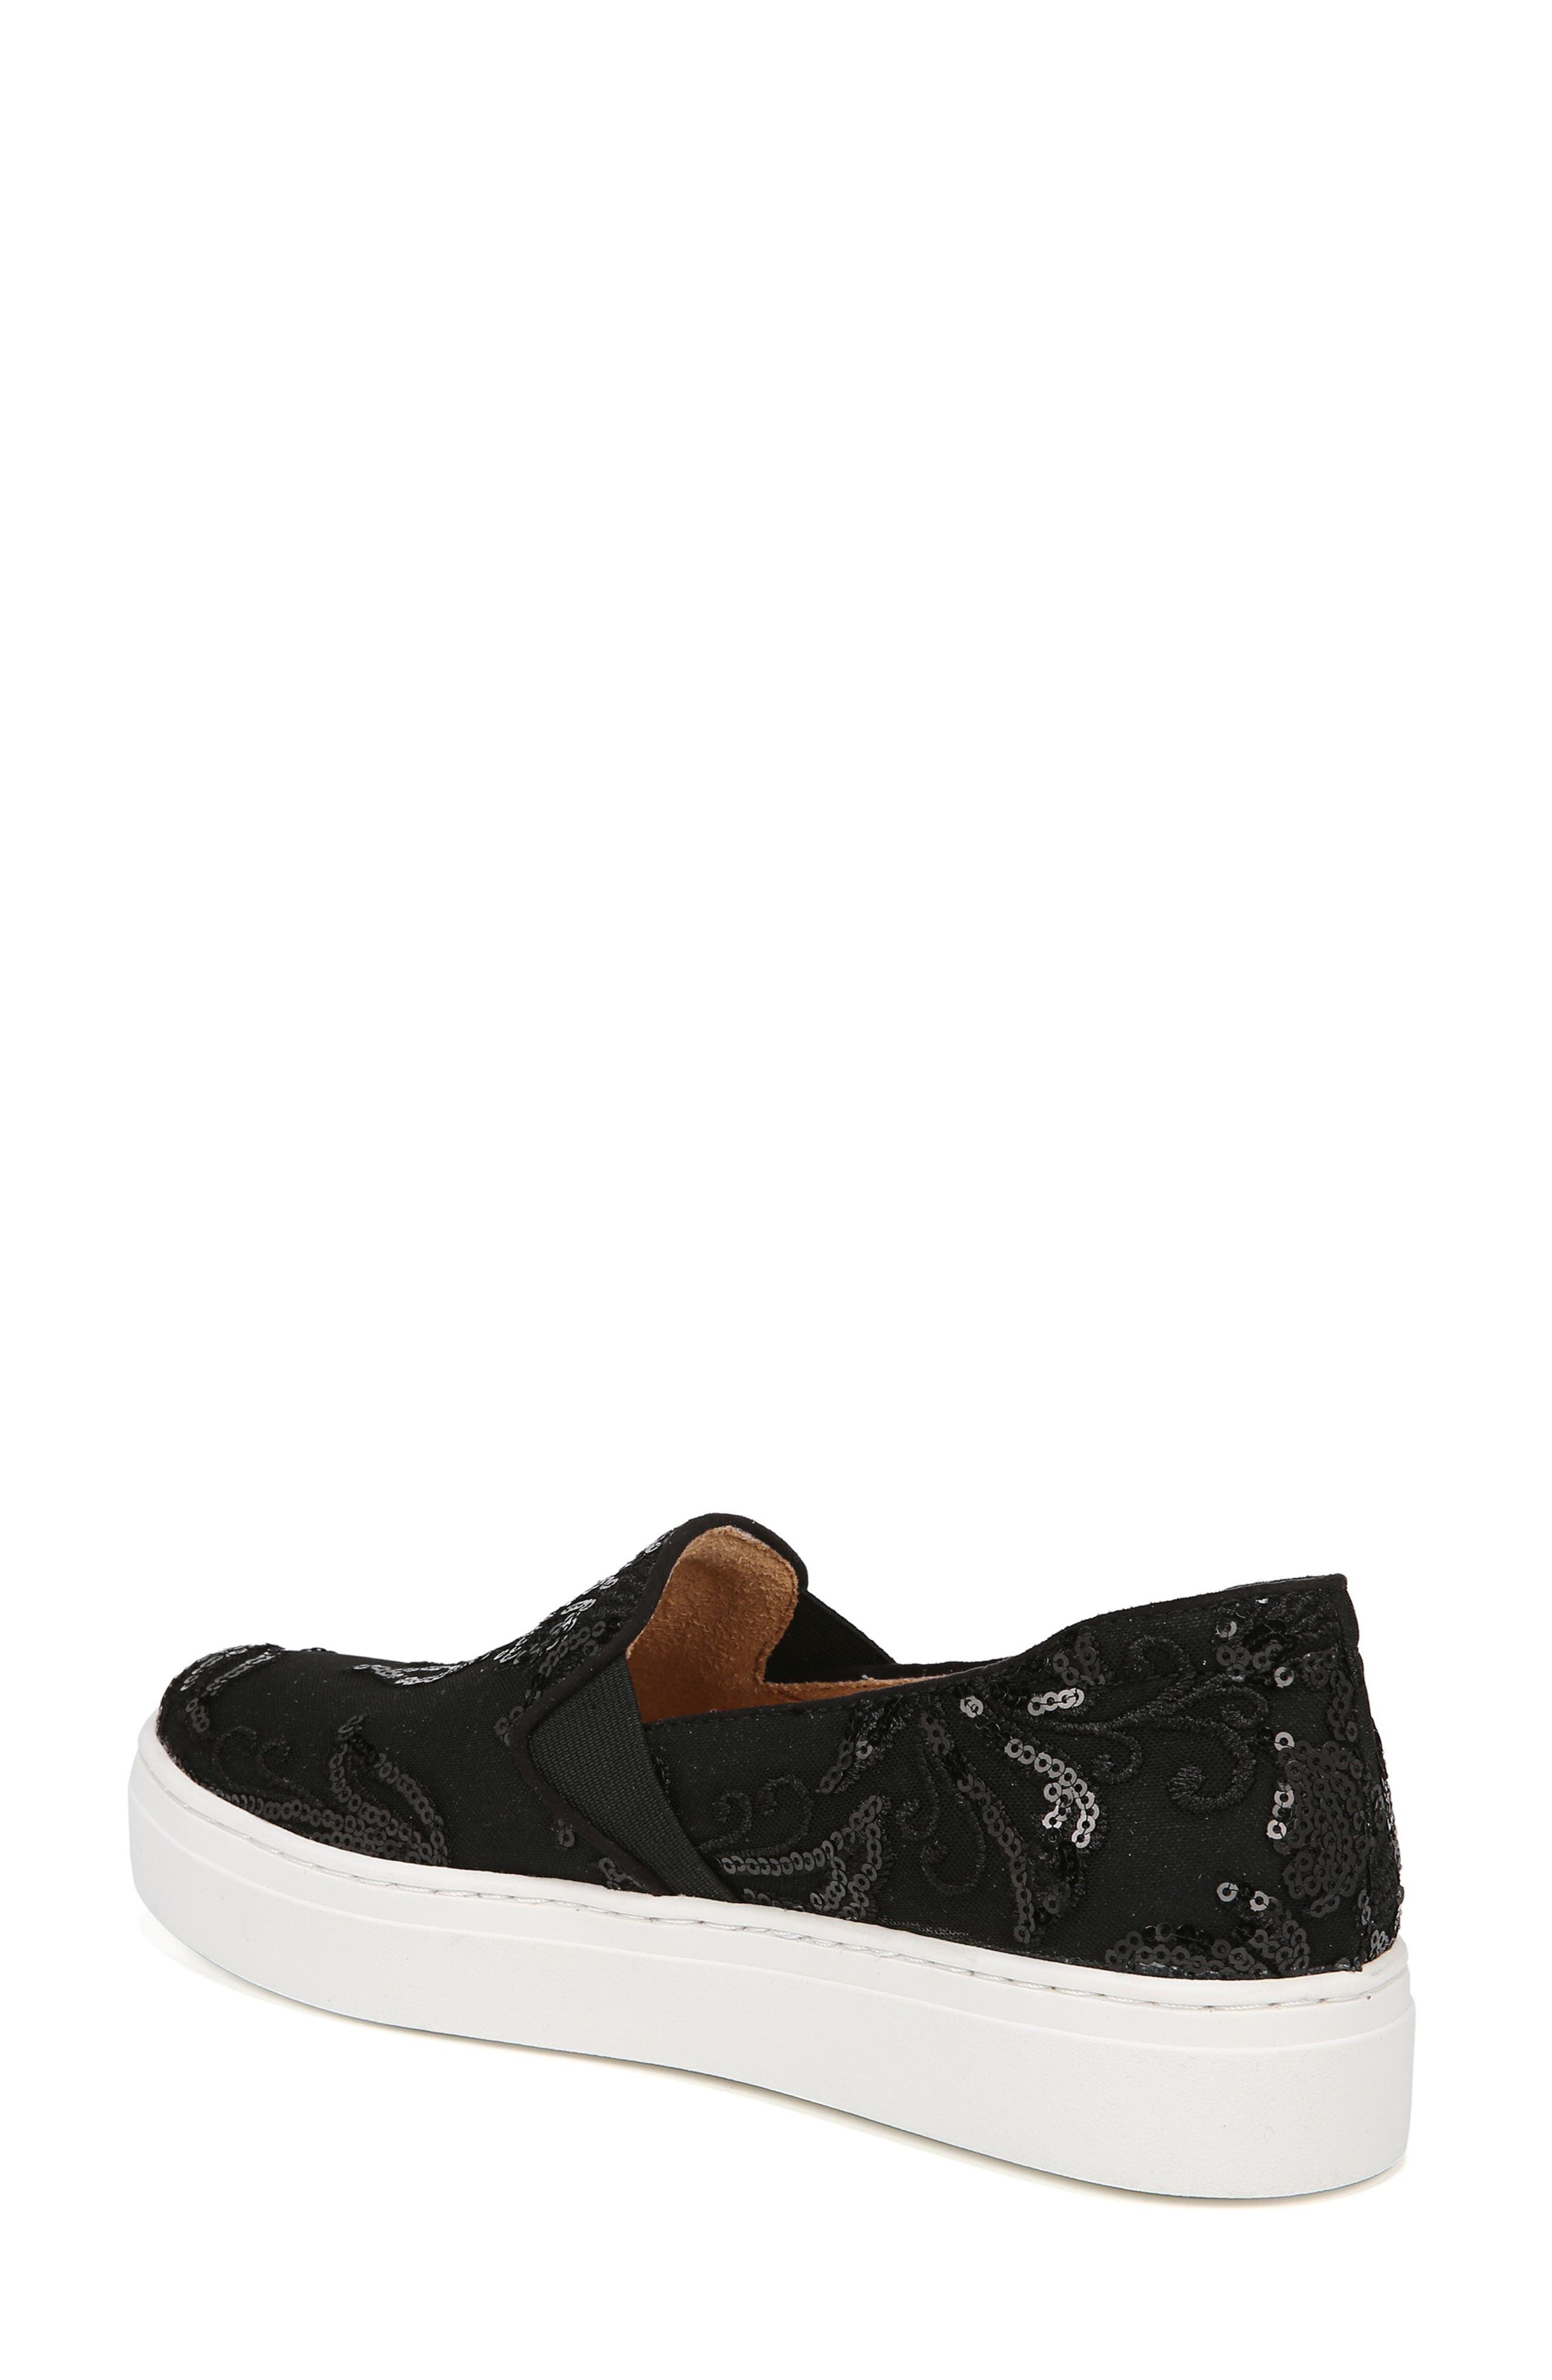 NATURALIZER, Carly Slip-On Sneaker, Alternate thumbnail 2, color, BLACK EMBROIDERED LACE